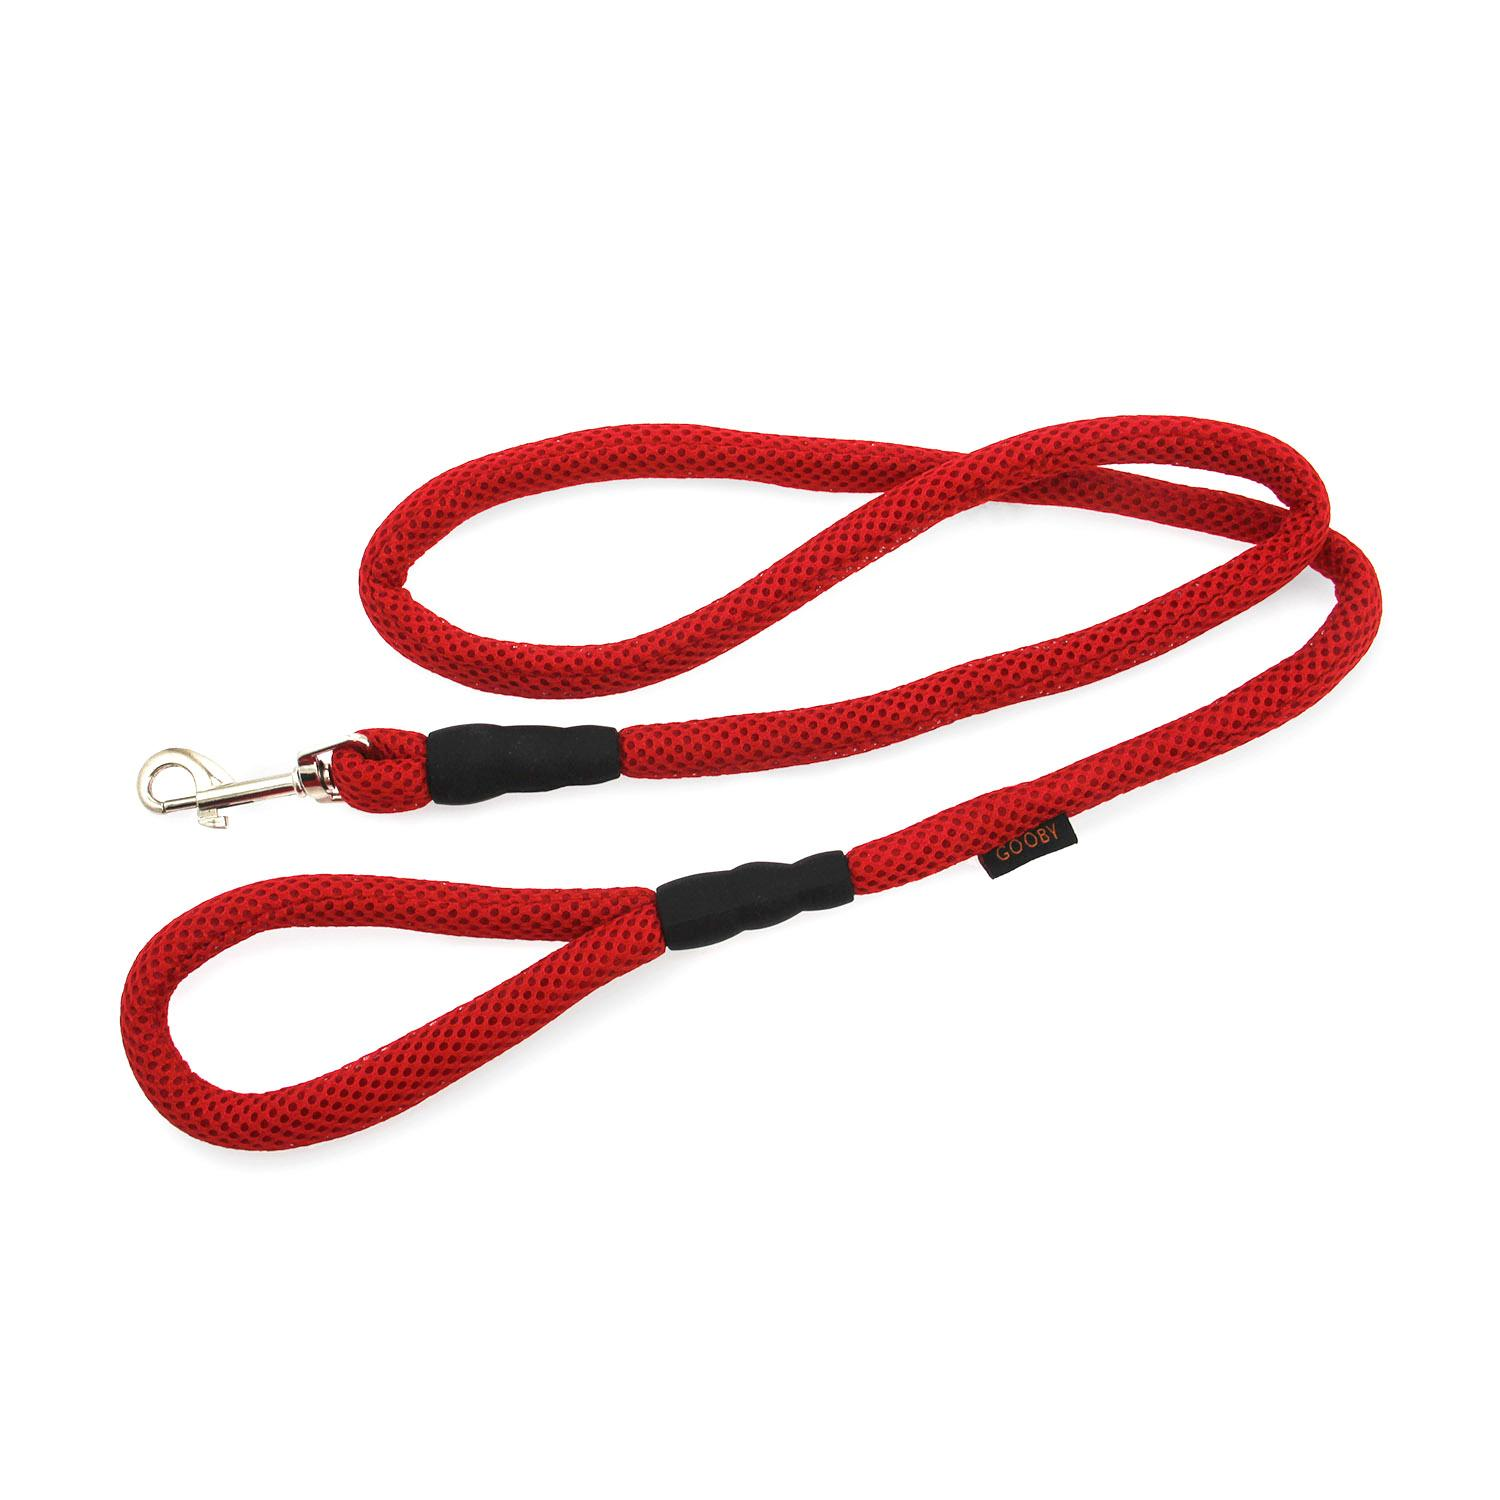 Gooby Mesh Fabric Dog Leash - Red